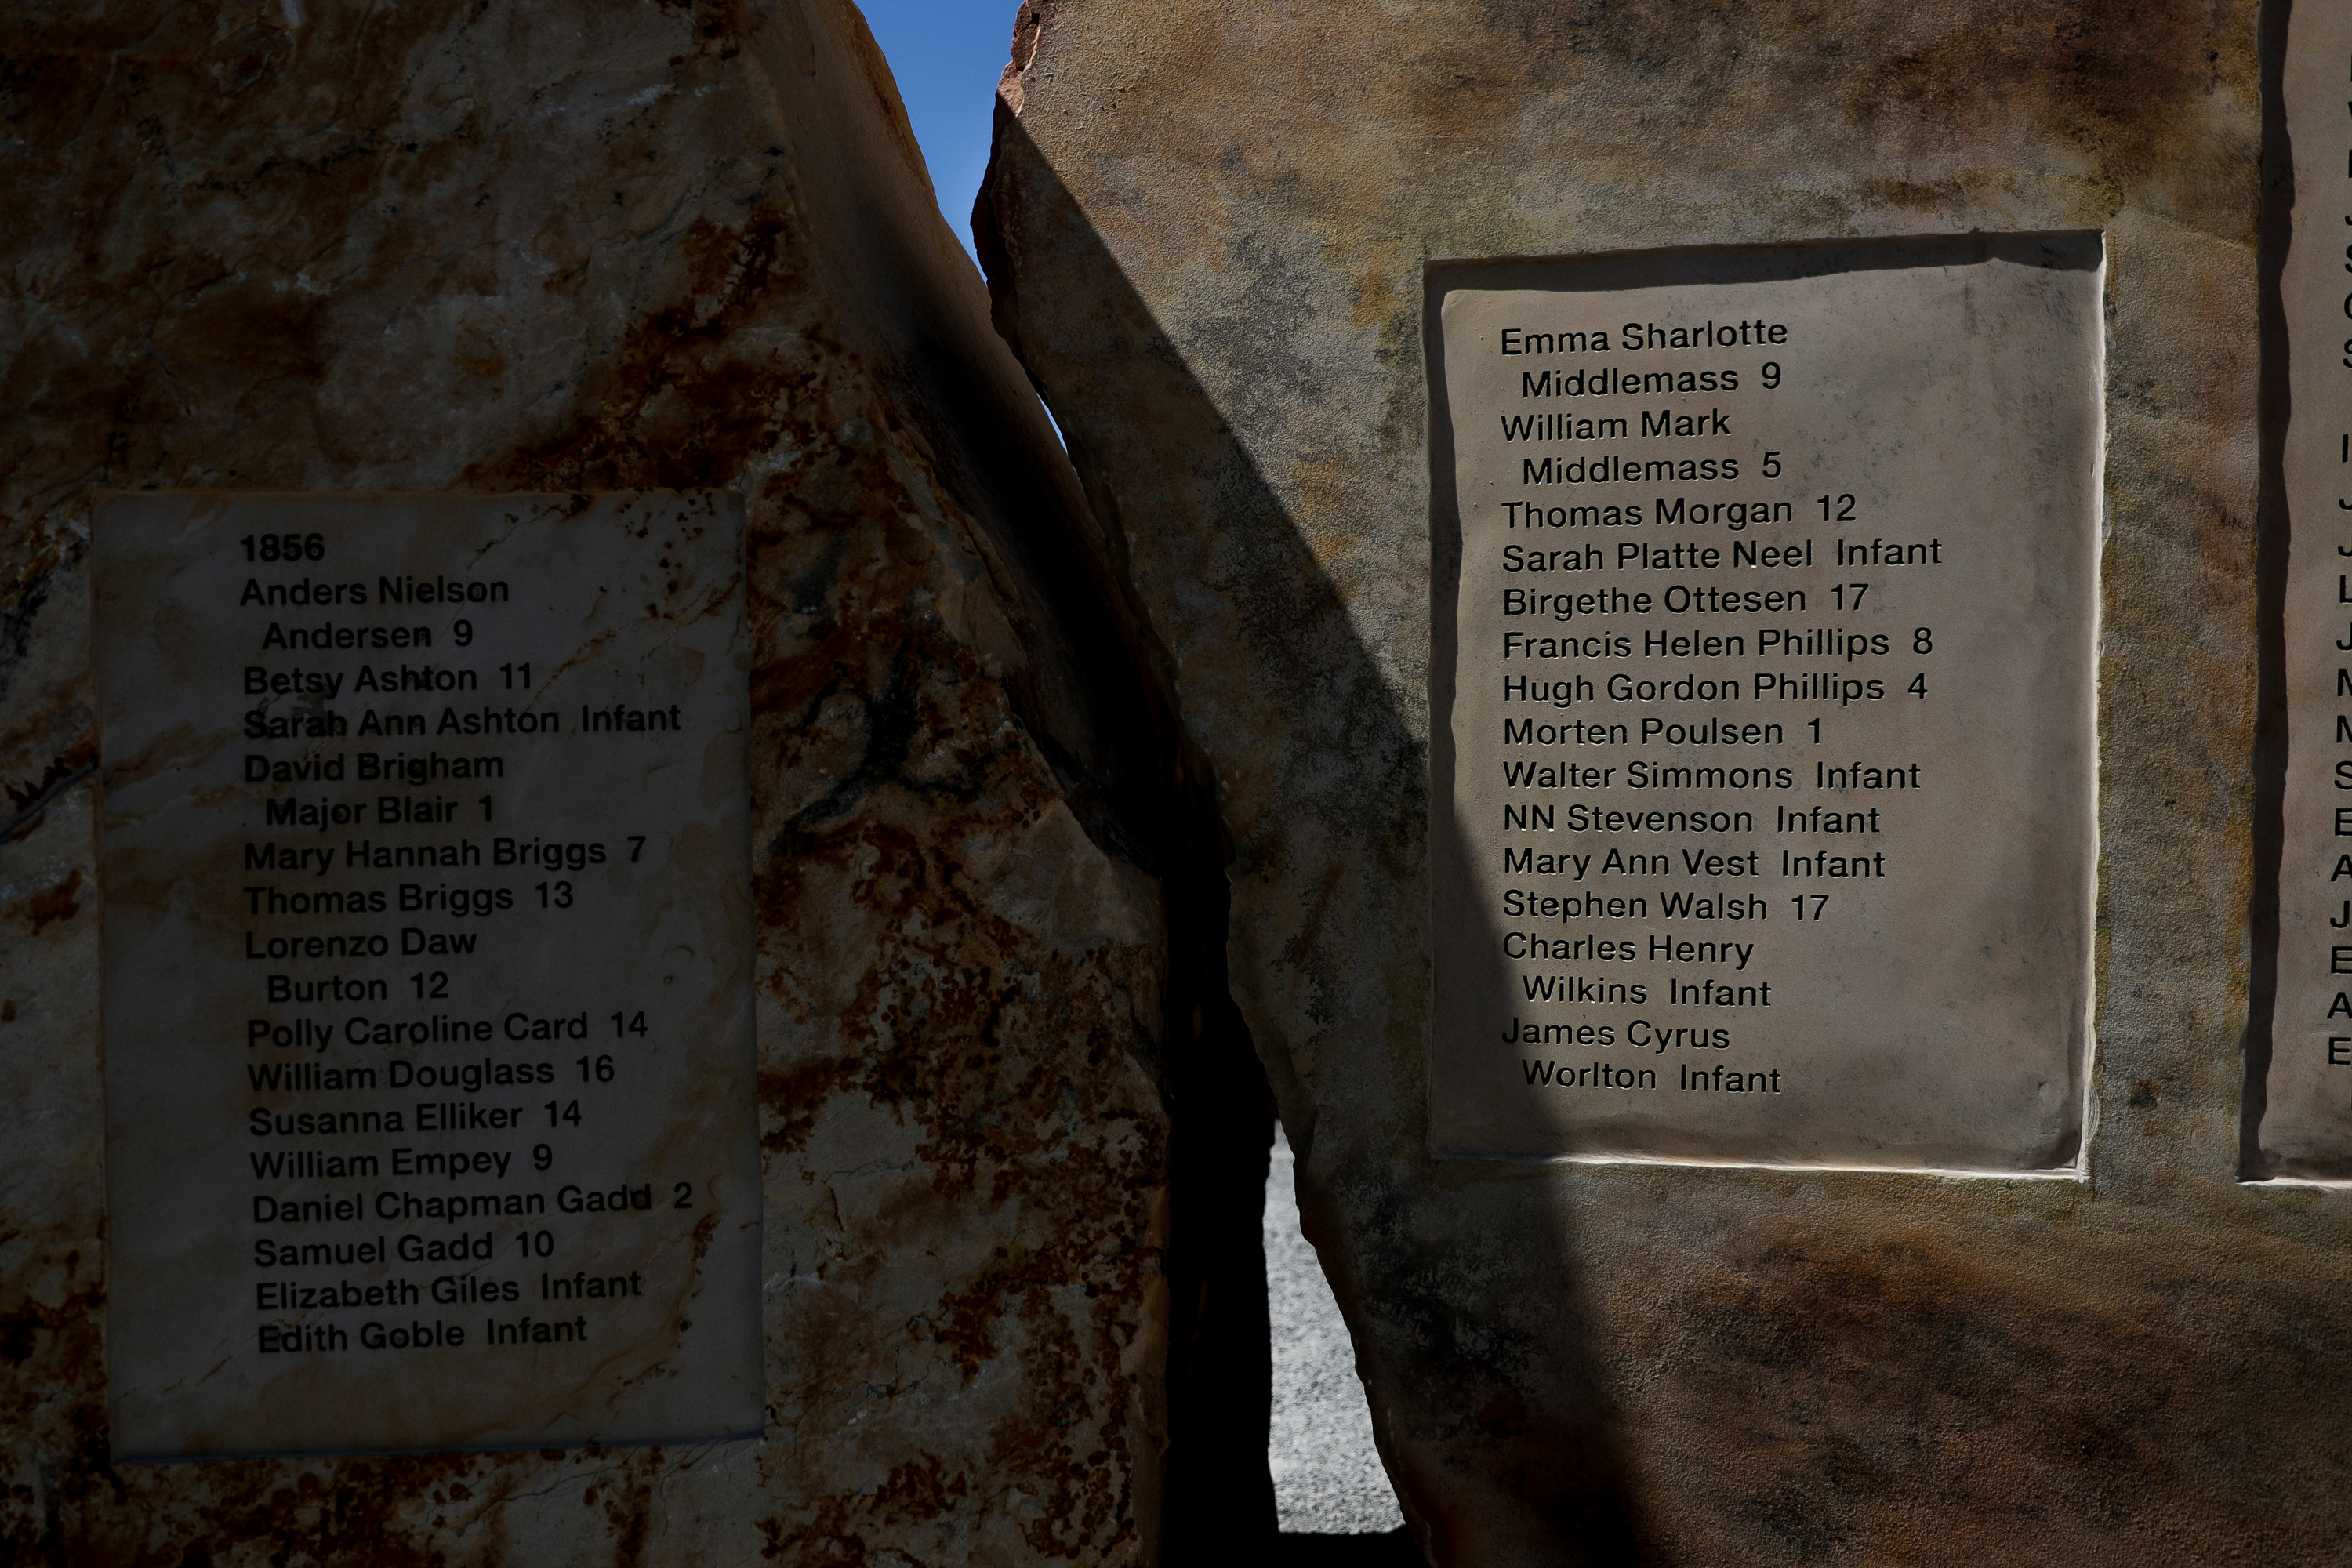 Stones list the names of pioneer children who died on the journey to the Salt Lake Valley at the Children's Pioneer Memorial at This Is the Place Heritage Park in Salt Lake City on the day of the memorial's dedication, Saturday, July 20, 2019.